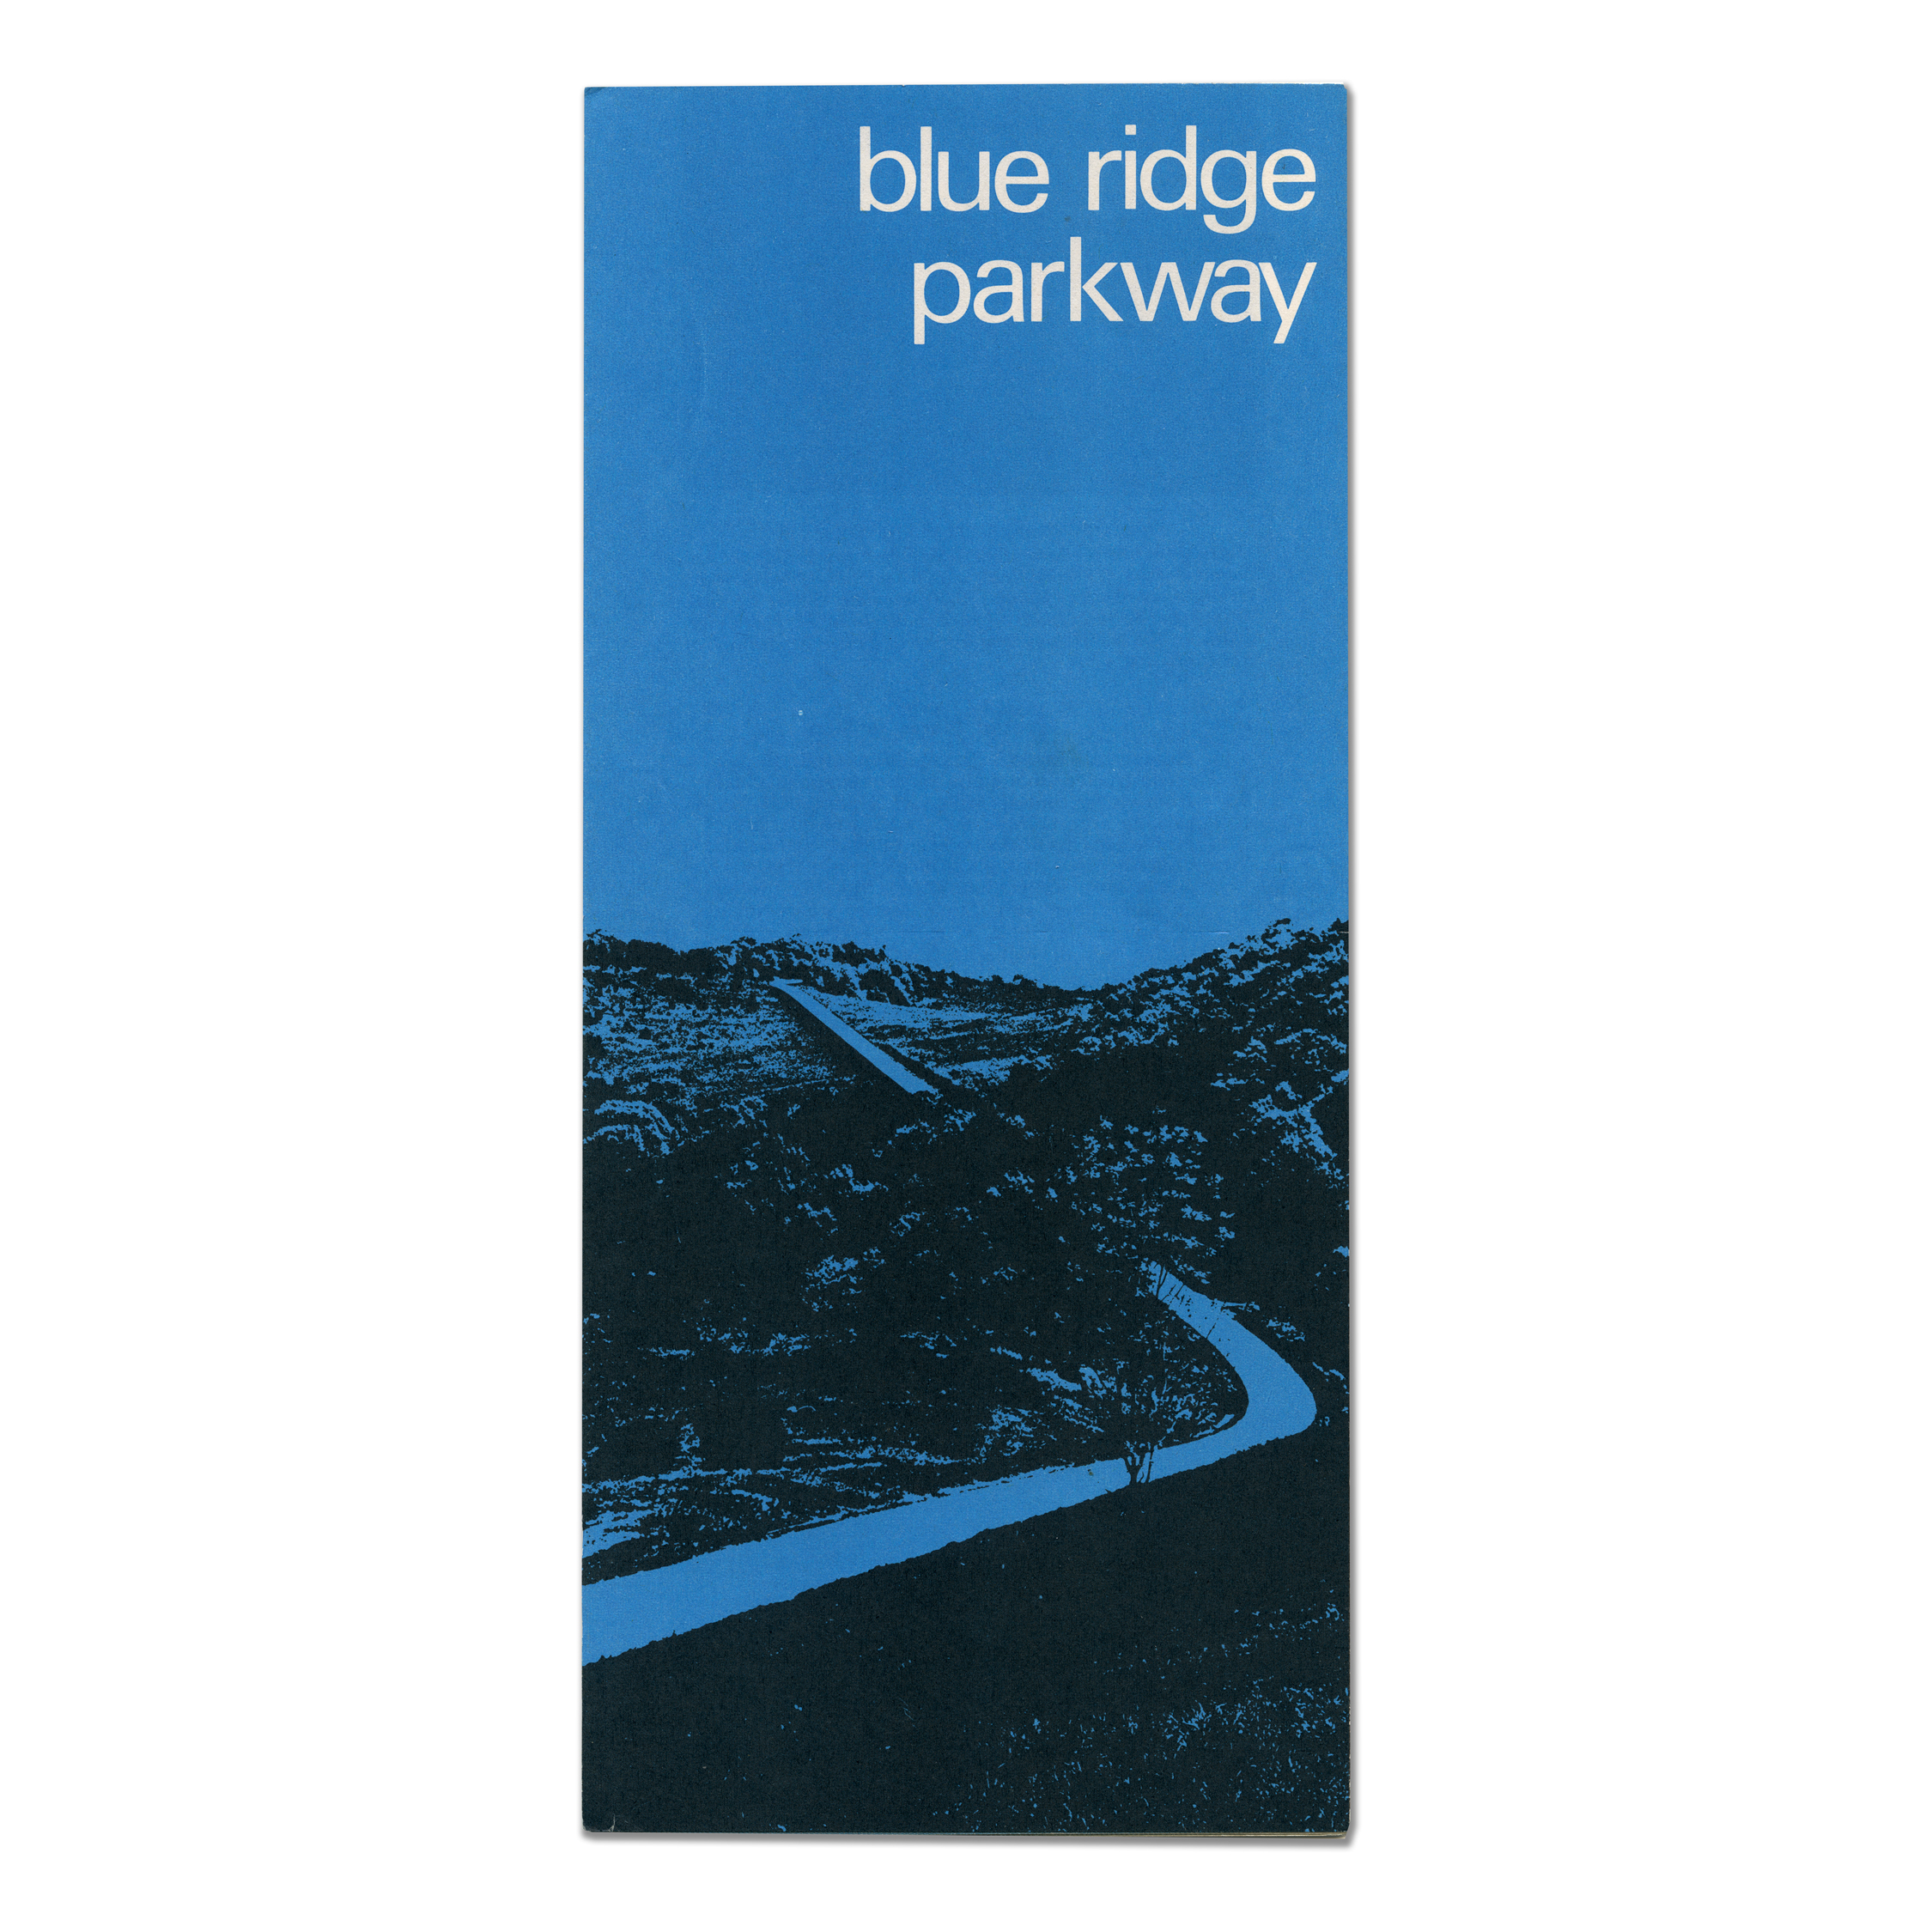 1964_blue_ridge_national_parkway_brochure.jpg